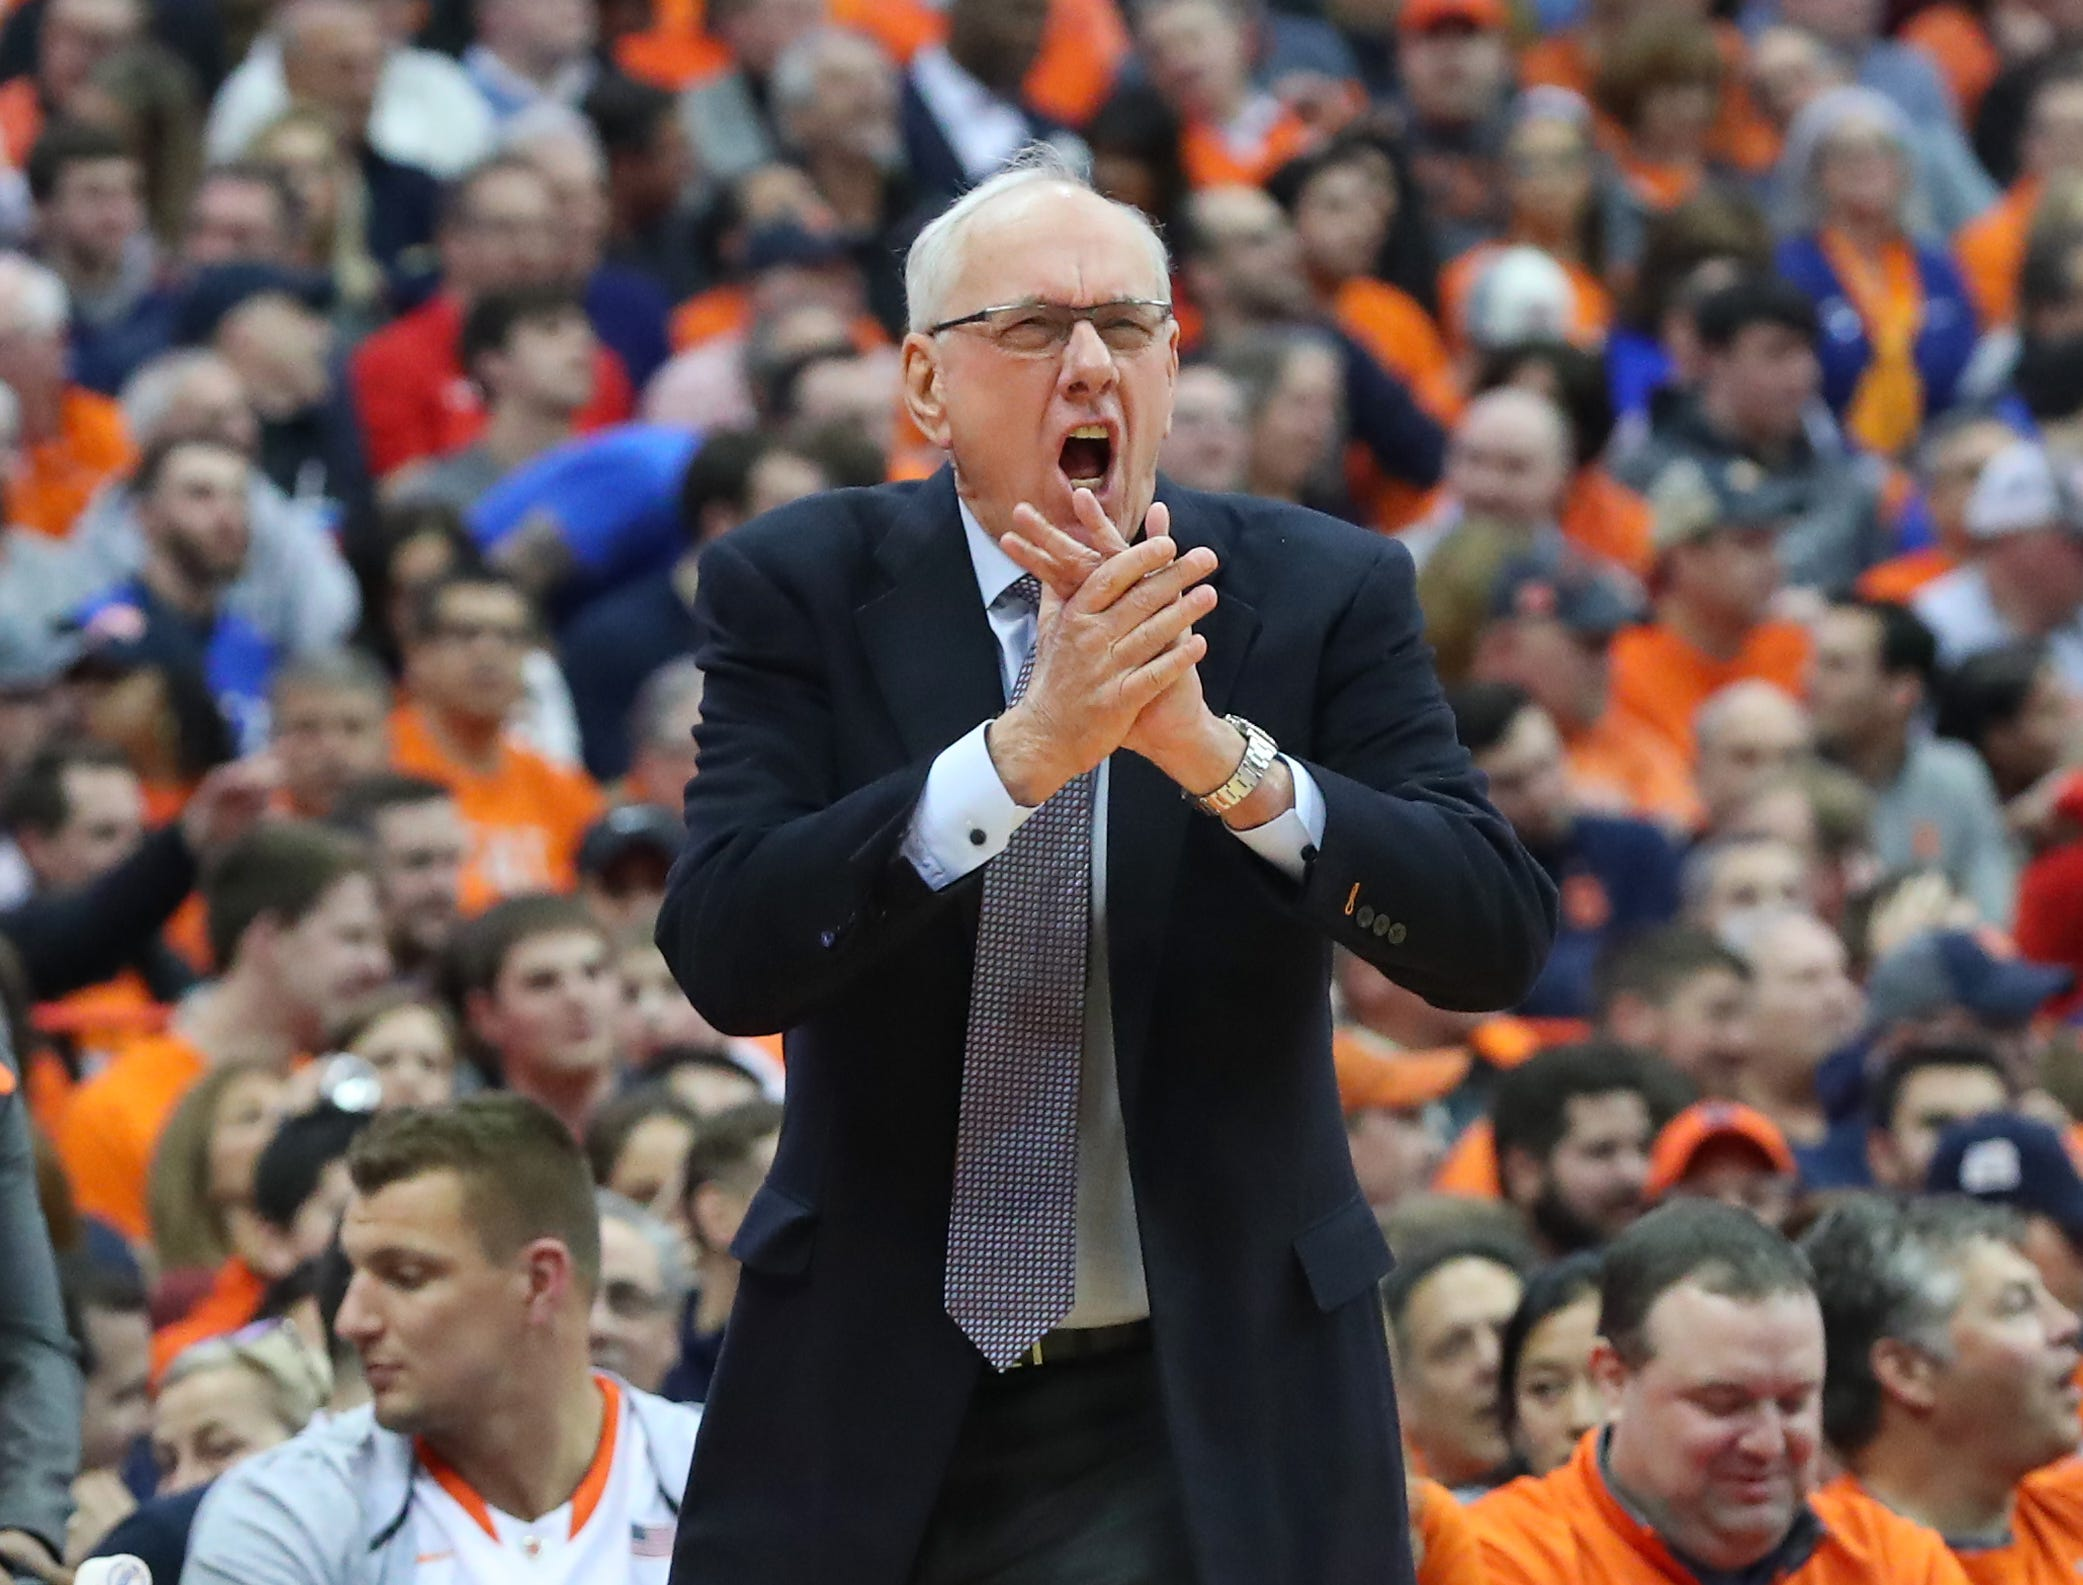 SYRACUSE, NY - FEBRUARY 23:  Head coach Jim Boeheim of the Syracuse Orange reacts to a play against the Duke Blue Devils during the first half at the Carrier Dome on February 23, 2019 in Syracuse, New York. (Photo by Rich Barnes/Getty Images)